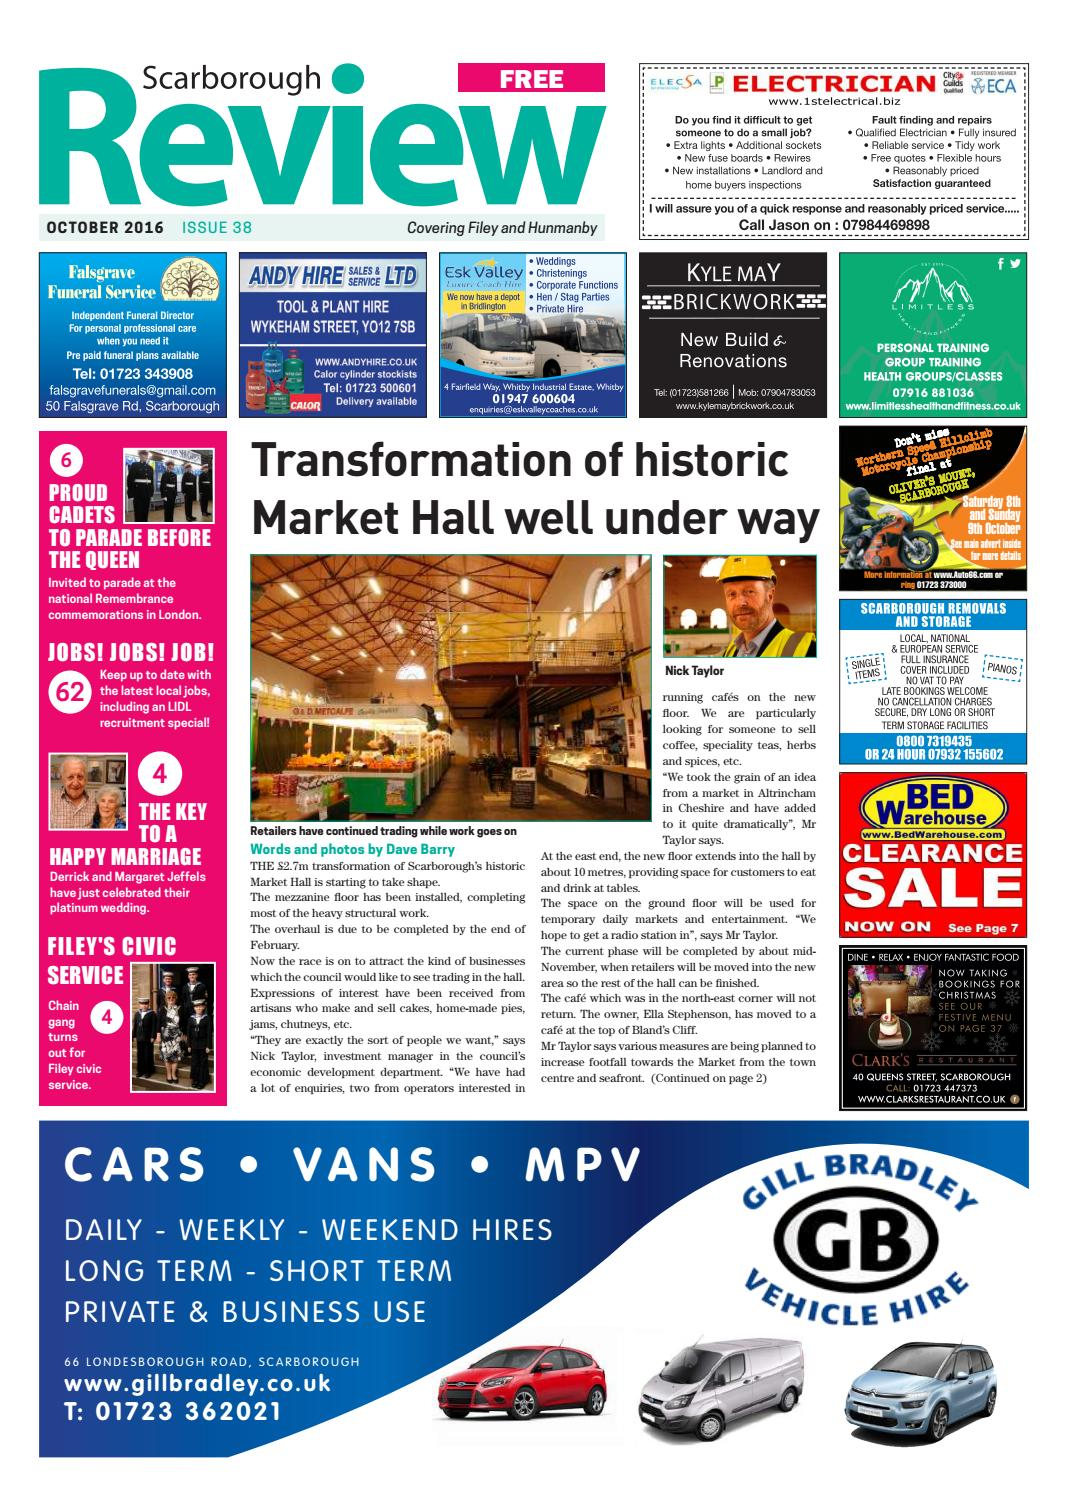 Scarborough Review October 2016 By Your Local Link Ltd Issuu